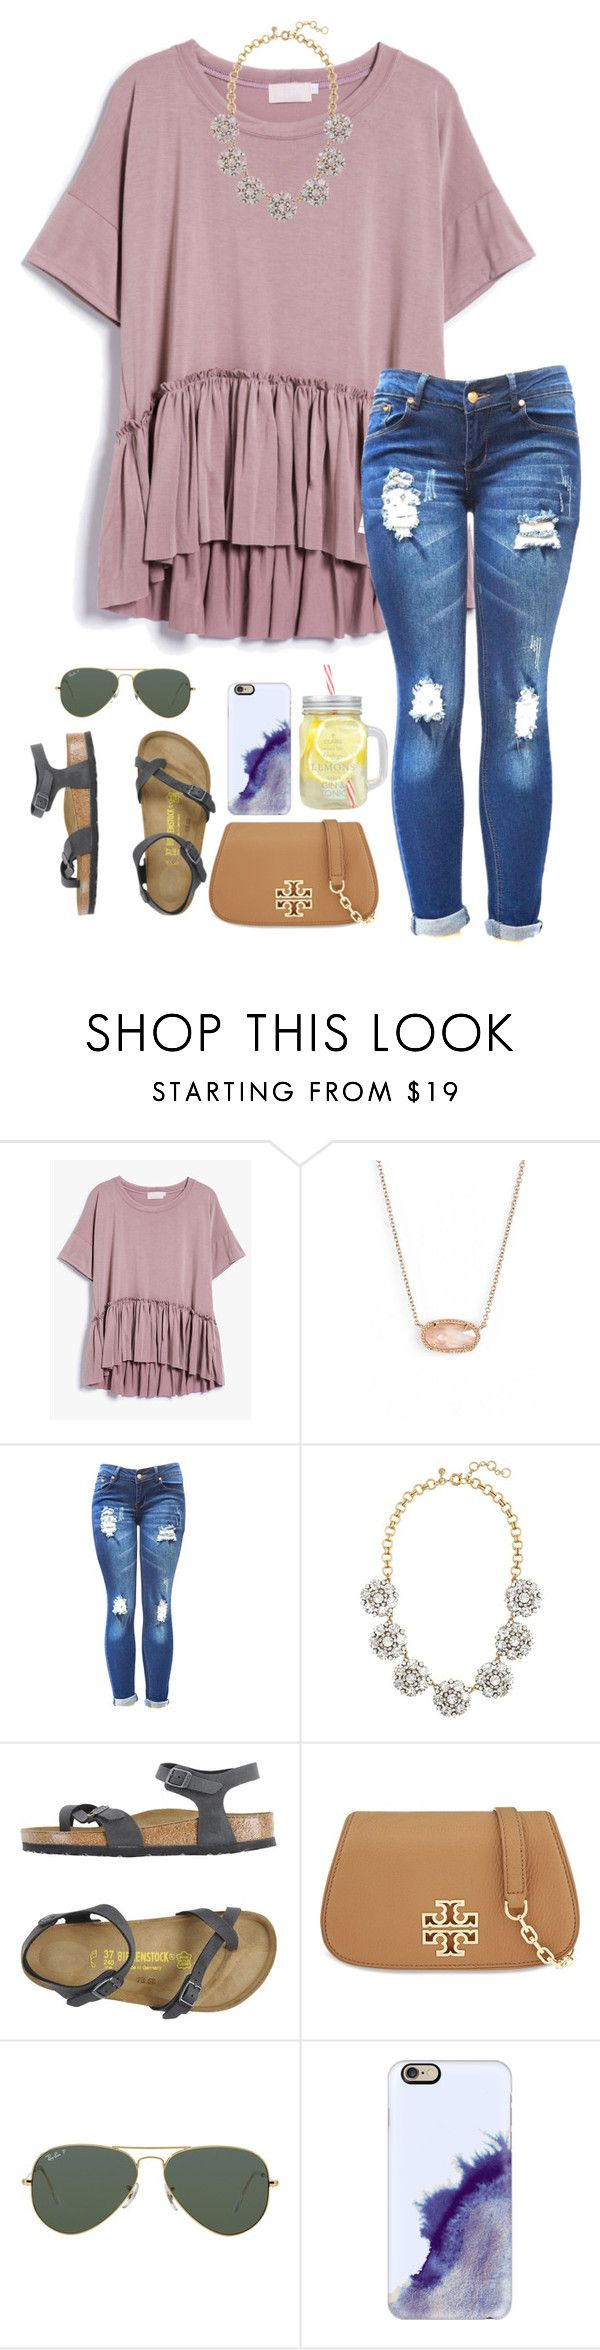 """Happy Sunday!"" by sassysouthernprep99 ❤ liked on Polyvore featuring Kendra Scott, J.Crew, Birkenstock, Tory Burch, Ray-Ban and Casetify"